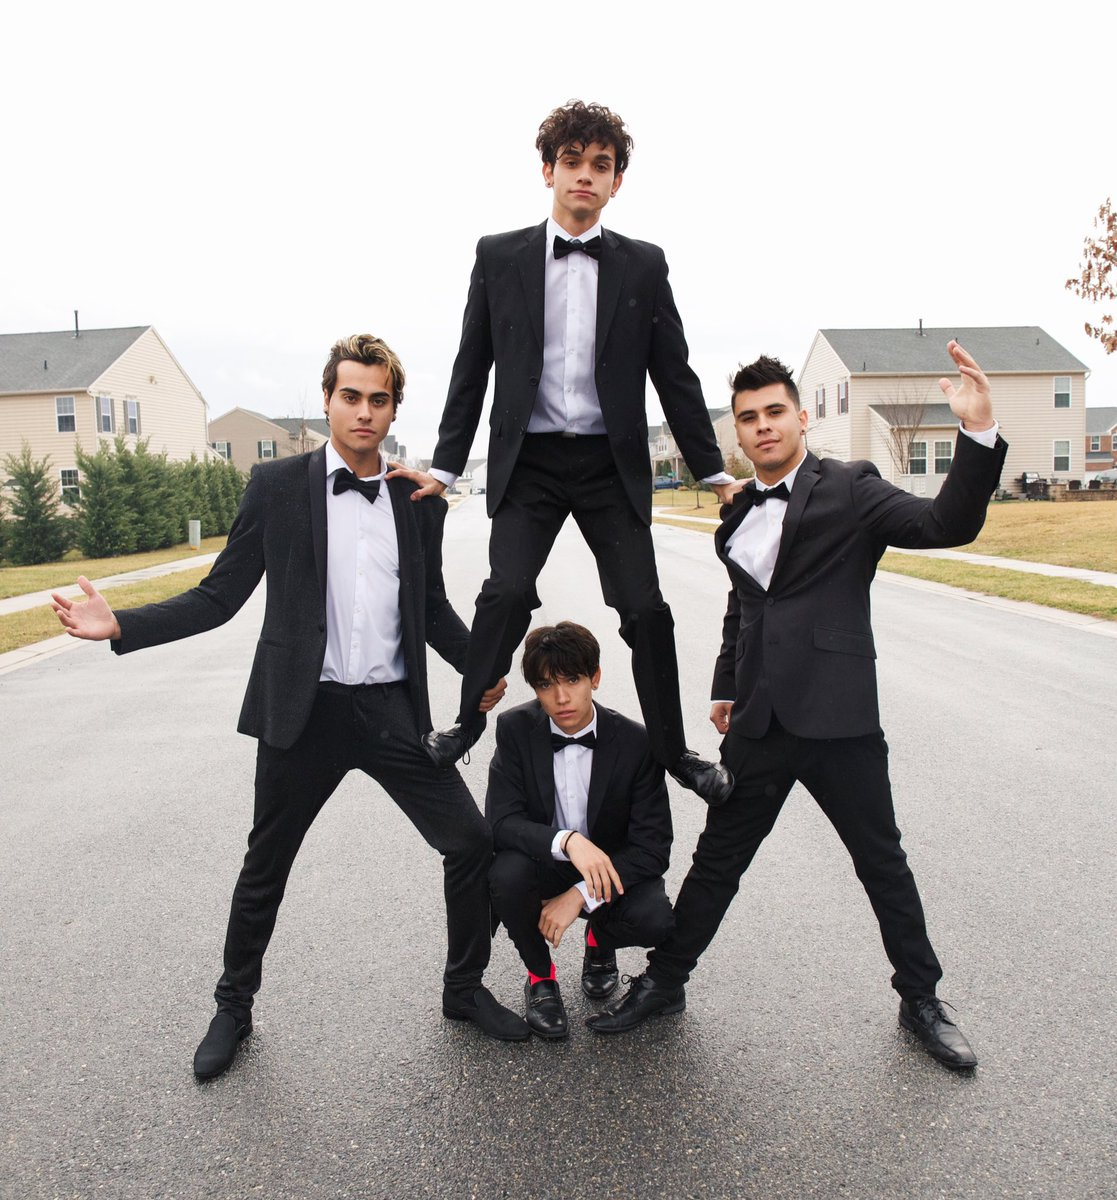 marcus mature singles Fastlanepromotion subscribe subscribed unsubscribe 168 loading loading working home  lucas and marcus - channel subscribe subscribed unsubscribe.